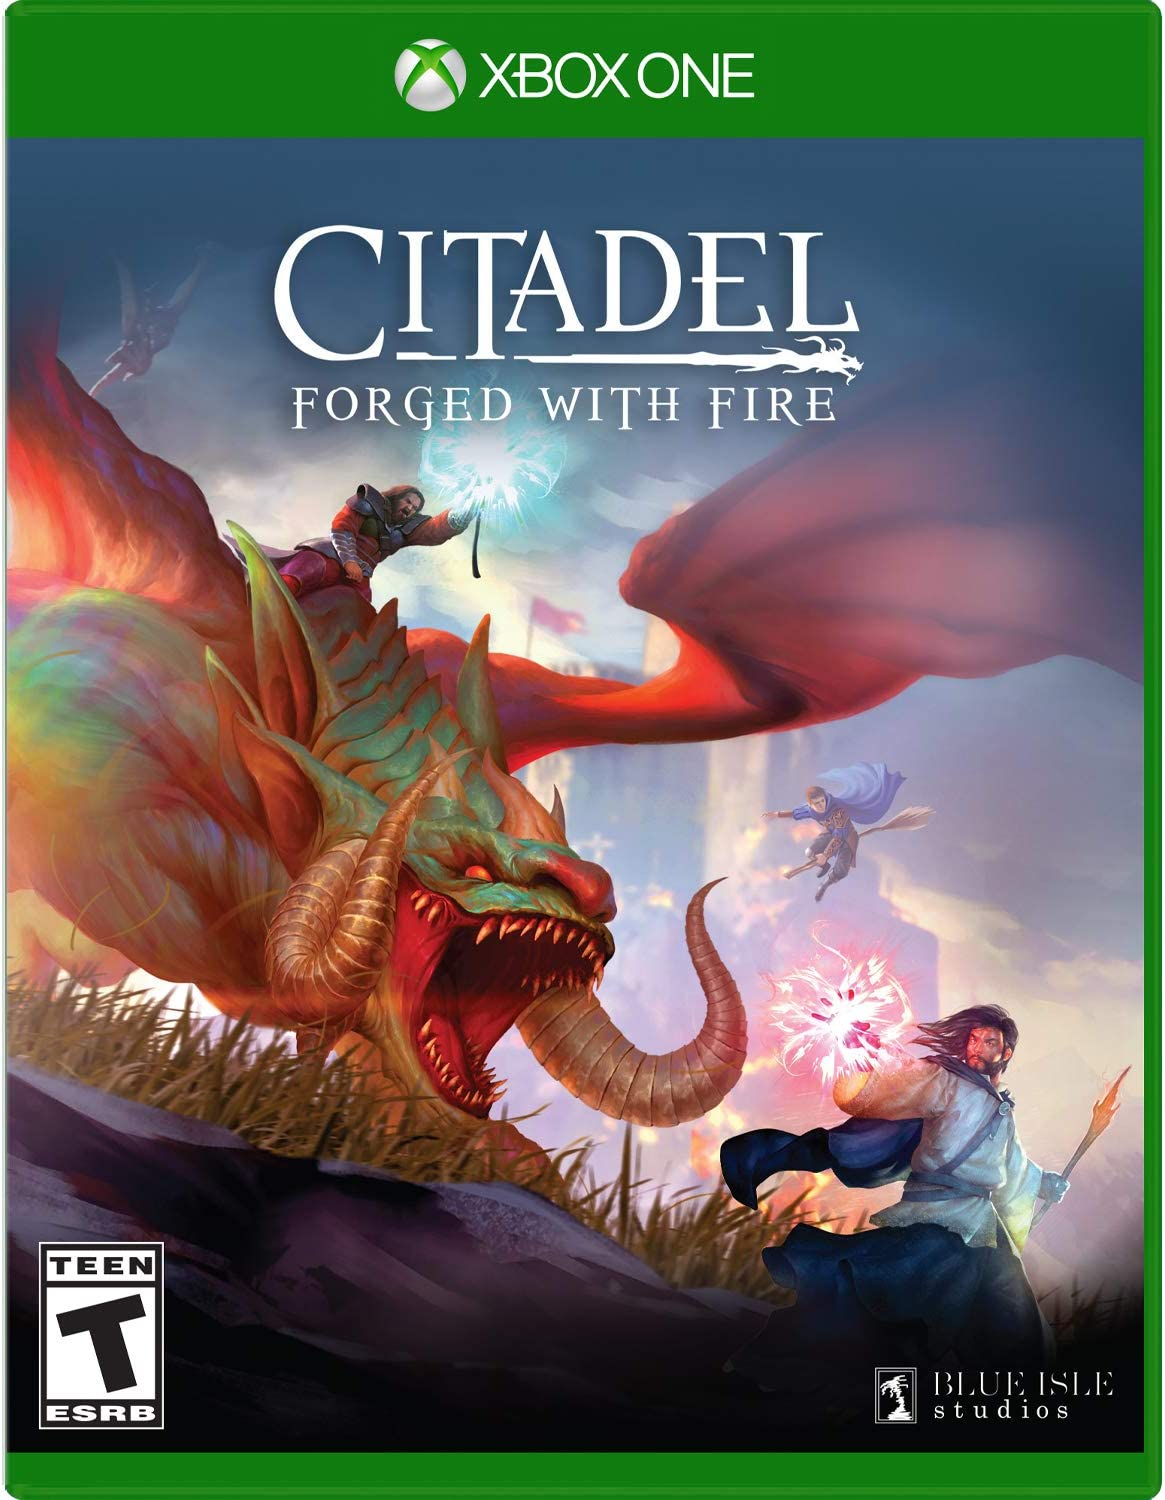 Citadel: forged with Fire is a massive online sandbox RPG with elements of magic, spellcasting and inter-kingdom conflict. As a newly minted apprentice of the magic arts, you will set off to investigate the dangerous world of igneous. Your goal: create a name for yourself and achieve notoriety and power among the land's ruling house you have complete freedom to pursue your own destiny; hatch plots of trickery and deceit to Ascend the ranks among allies and enemies, become an infamous Hunter of other players, build massive and unique castles, tame mighty beasts to do your bidding, and visit Uncharted territories to unravel their rich and intriguing history. The path to ultimate power and influence is yours to choose. Available now worldwide in retailers and on digital platforms, for PlayStation®4, Xbox One and Steam PC.